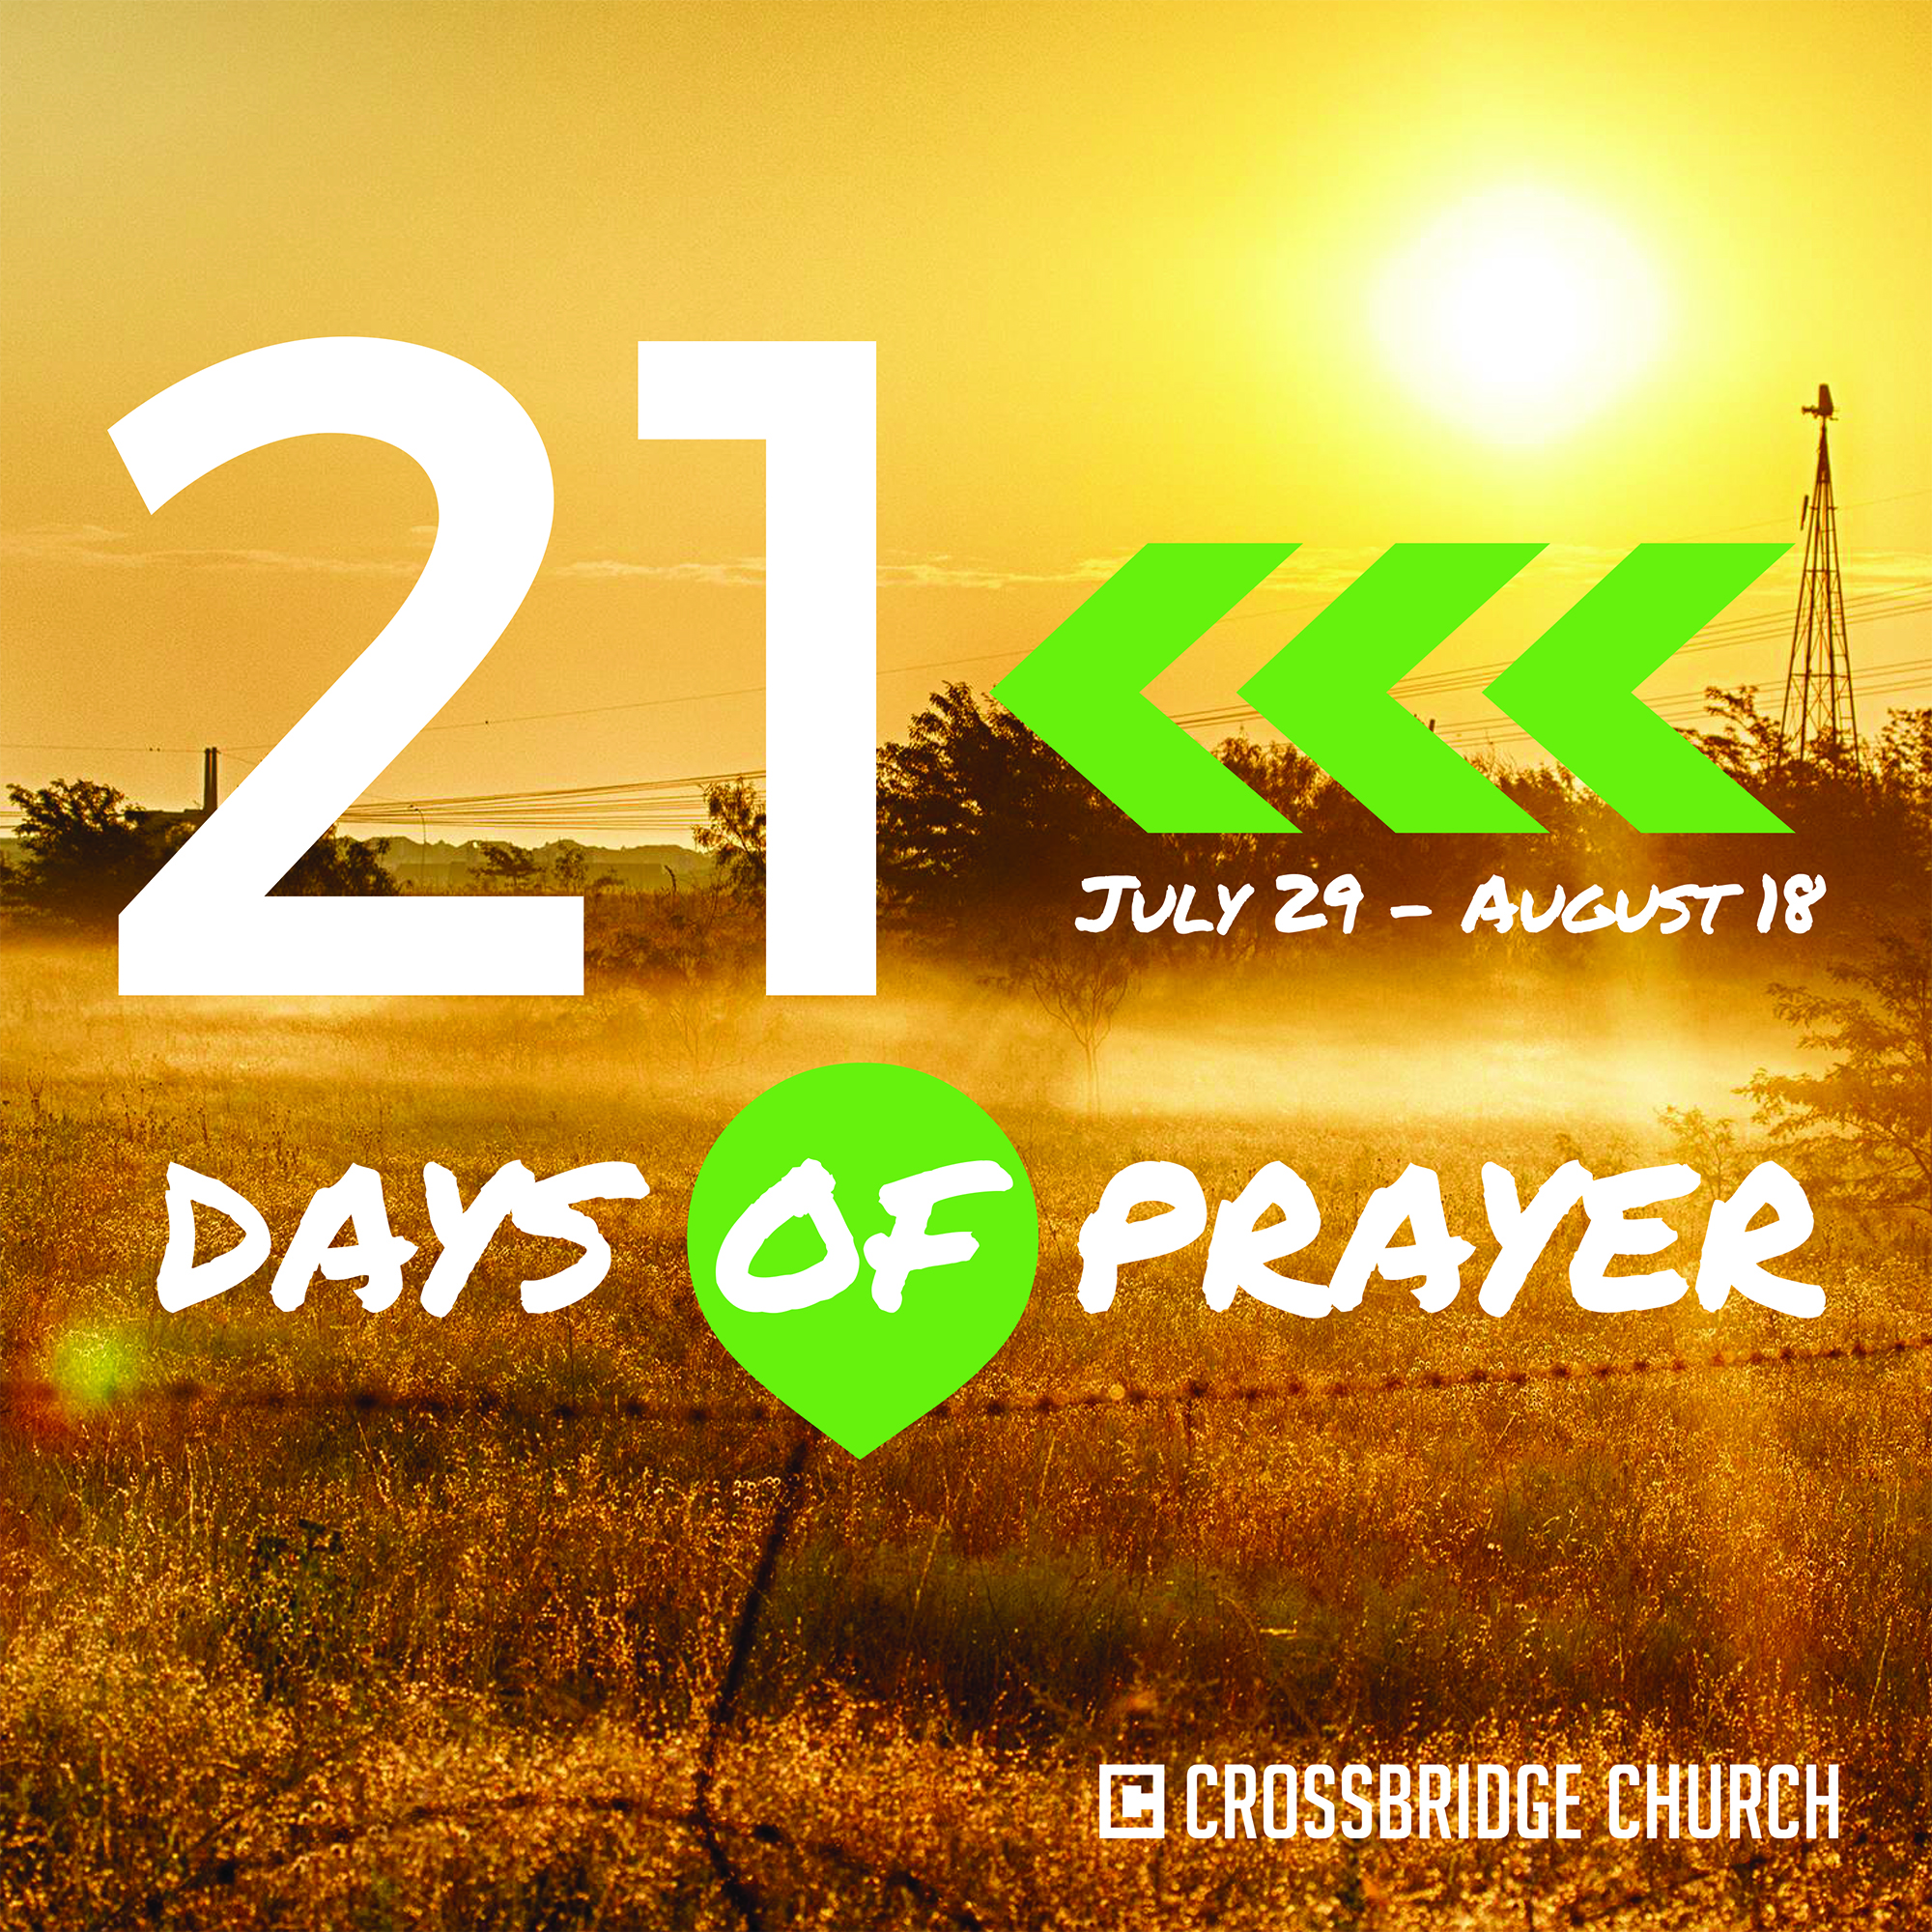 21 DAYS OF PRAYER | JULY 29 - AUGUST 18   As we near the end of summer, we want to prepare our hearts for all God is going to do in our church this next school year.We believe that prayer always precedes a mighty move of God, so starting Sunday July 29th we will begin our Summer 21 days of prayer, as we seek God's will for our church, city, nation, and world.  Join us for a Night of Prayer & Worship on  Wednesday, August 8th  from 7:00-8:00PM. You don't want to miss this powerful night! Childcare is available for 4th Grade and younger. Click  here to register.  You can download a digital copy of our prayer booklet by clicking  here .  Sun., July 29: 21 Days of Prayer Begins Wed., Aug. 1: FB Live* w/ Ben Hester @ 12PM Wed., Aug 8:  Night of Worship 7-8PM Wed., Aug 15: FB Live* w/ Jennifer Krupa @ 12PM Sat., Aug. 18: FB Live* w/ Chuck Land 9AM  * Join us as we come together as a church via Facebook Live for prayer led by a staff member. Access via the Crossbridge Facebook page or click  here .